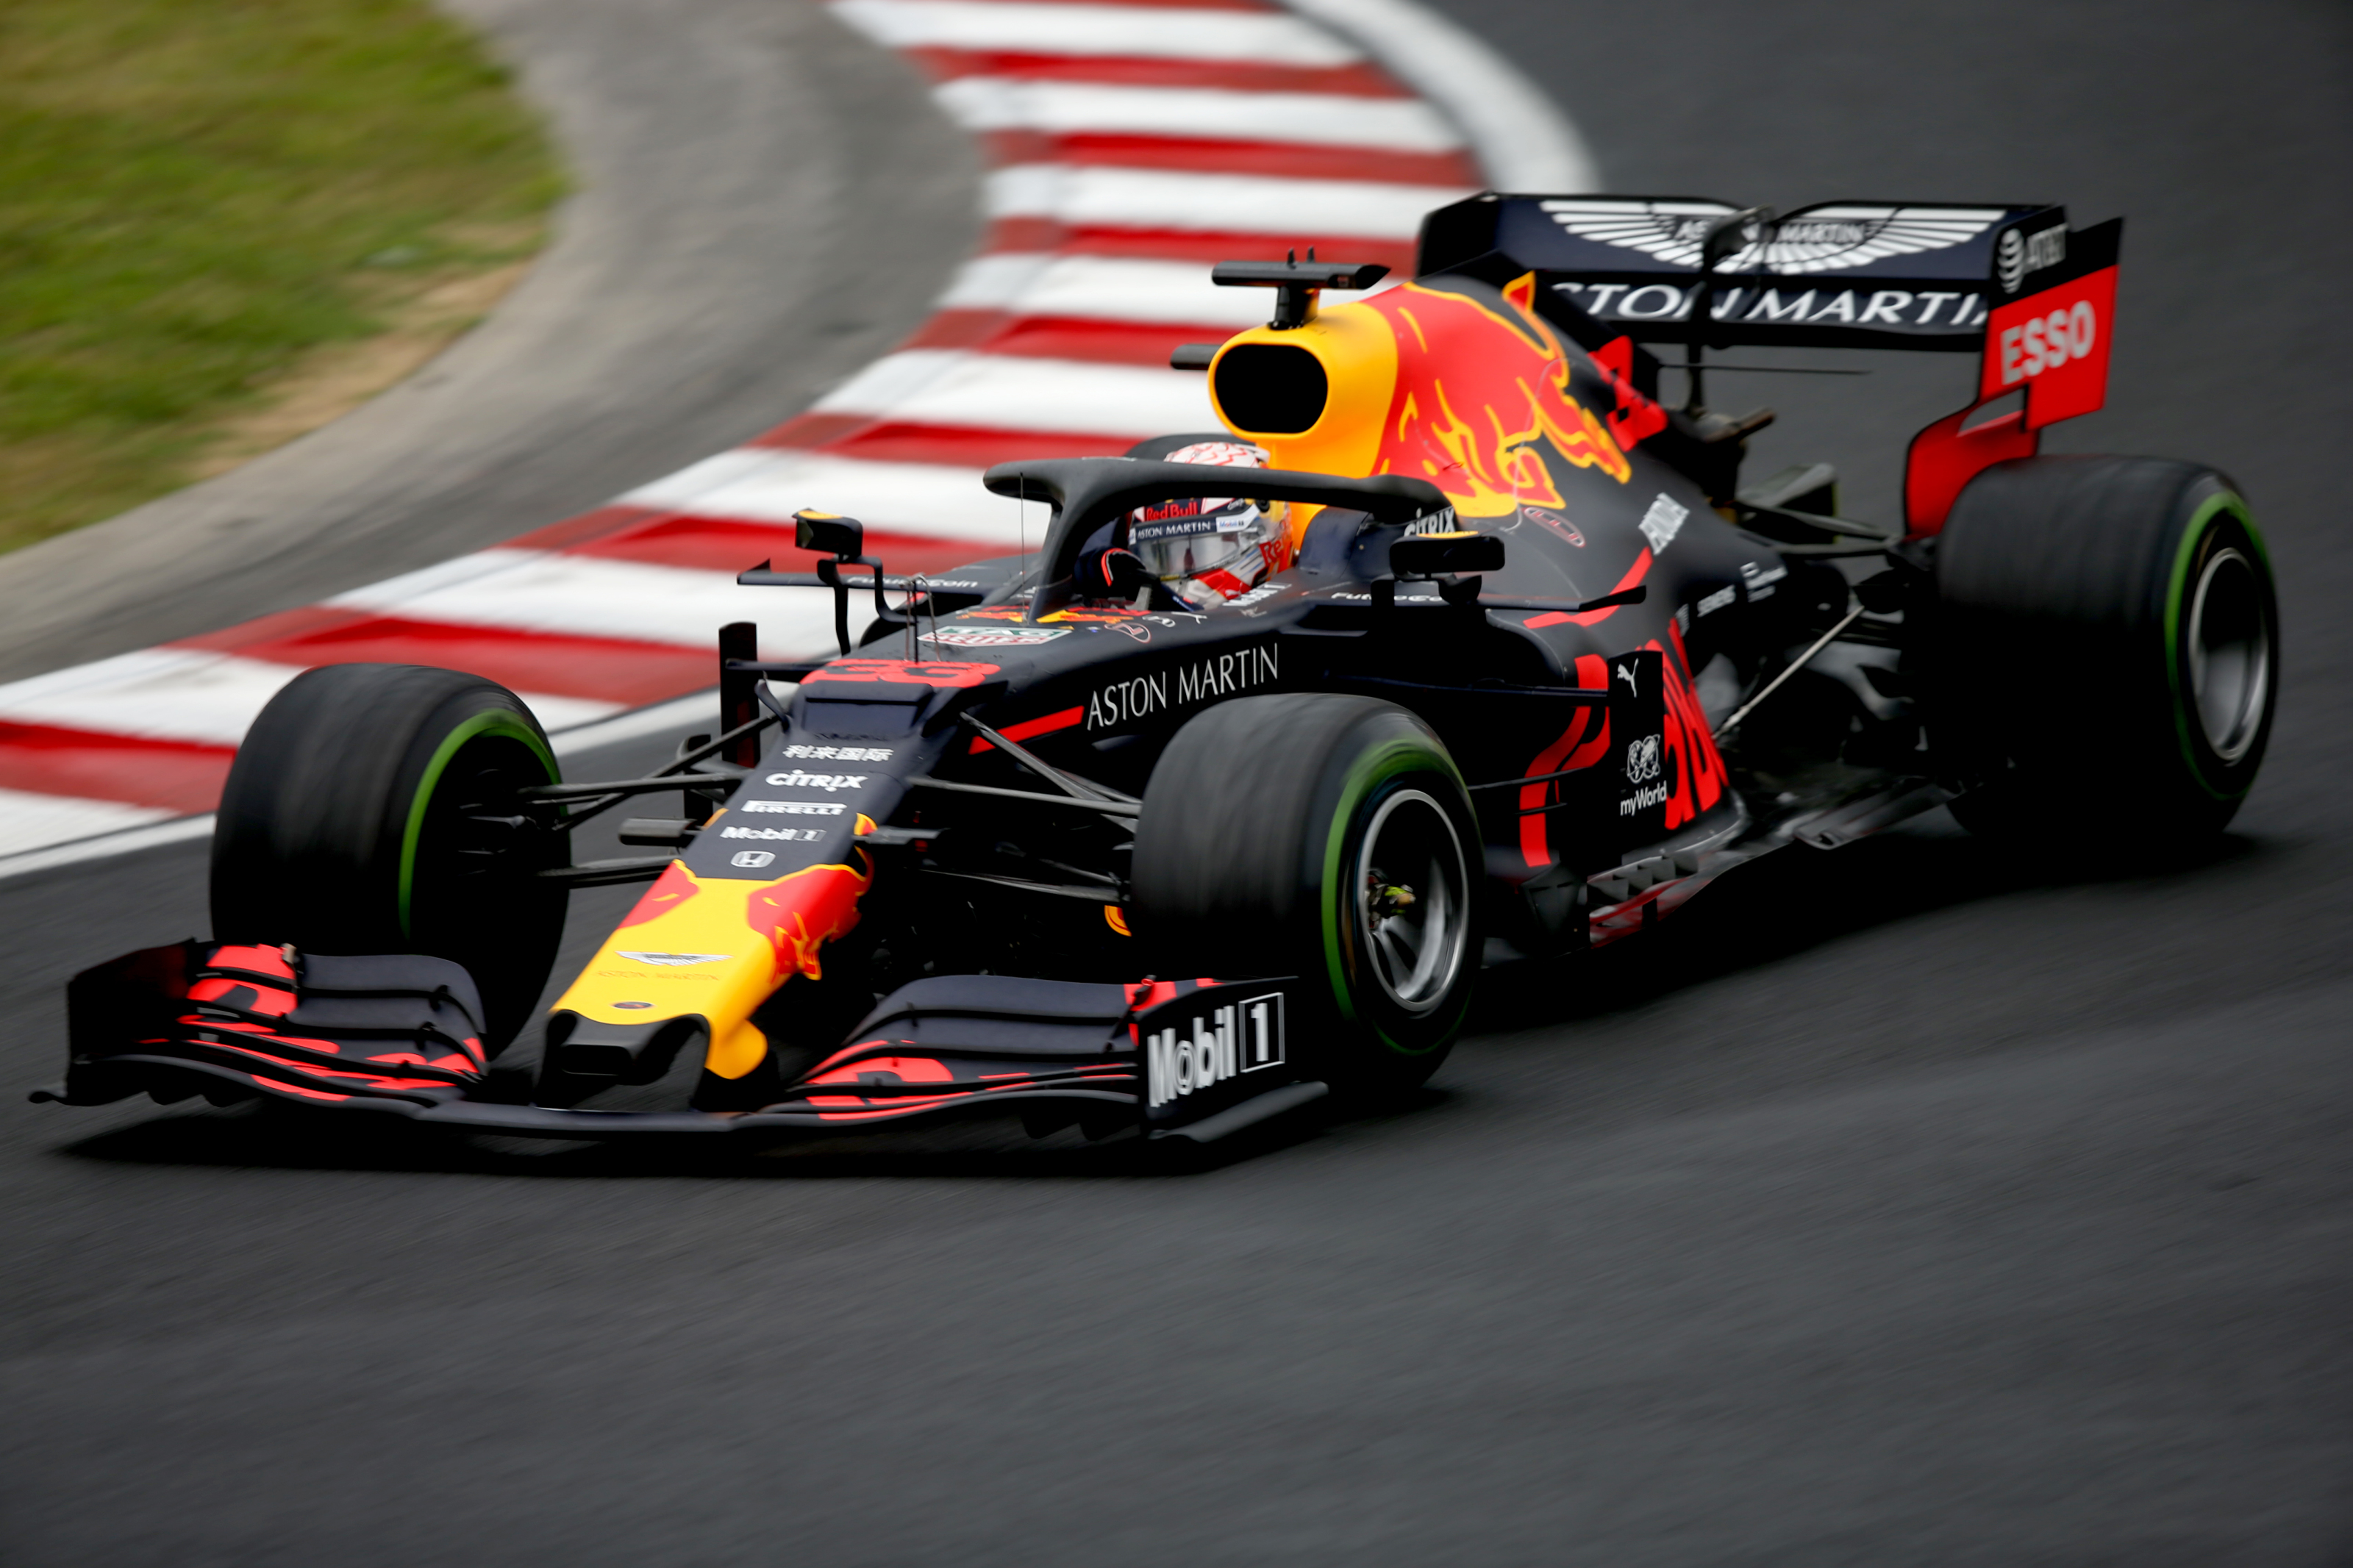 Formula 1 Have Red Bull Racing Ascended To Mercedes Level